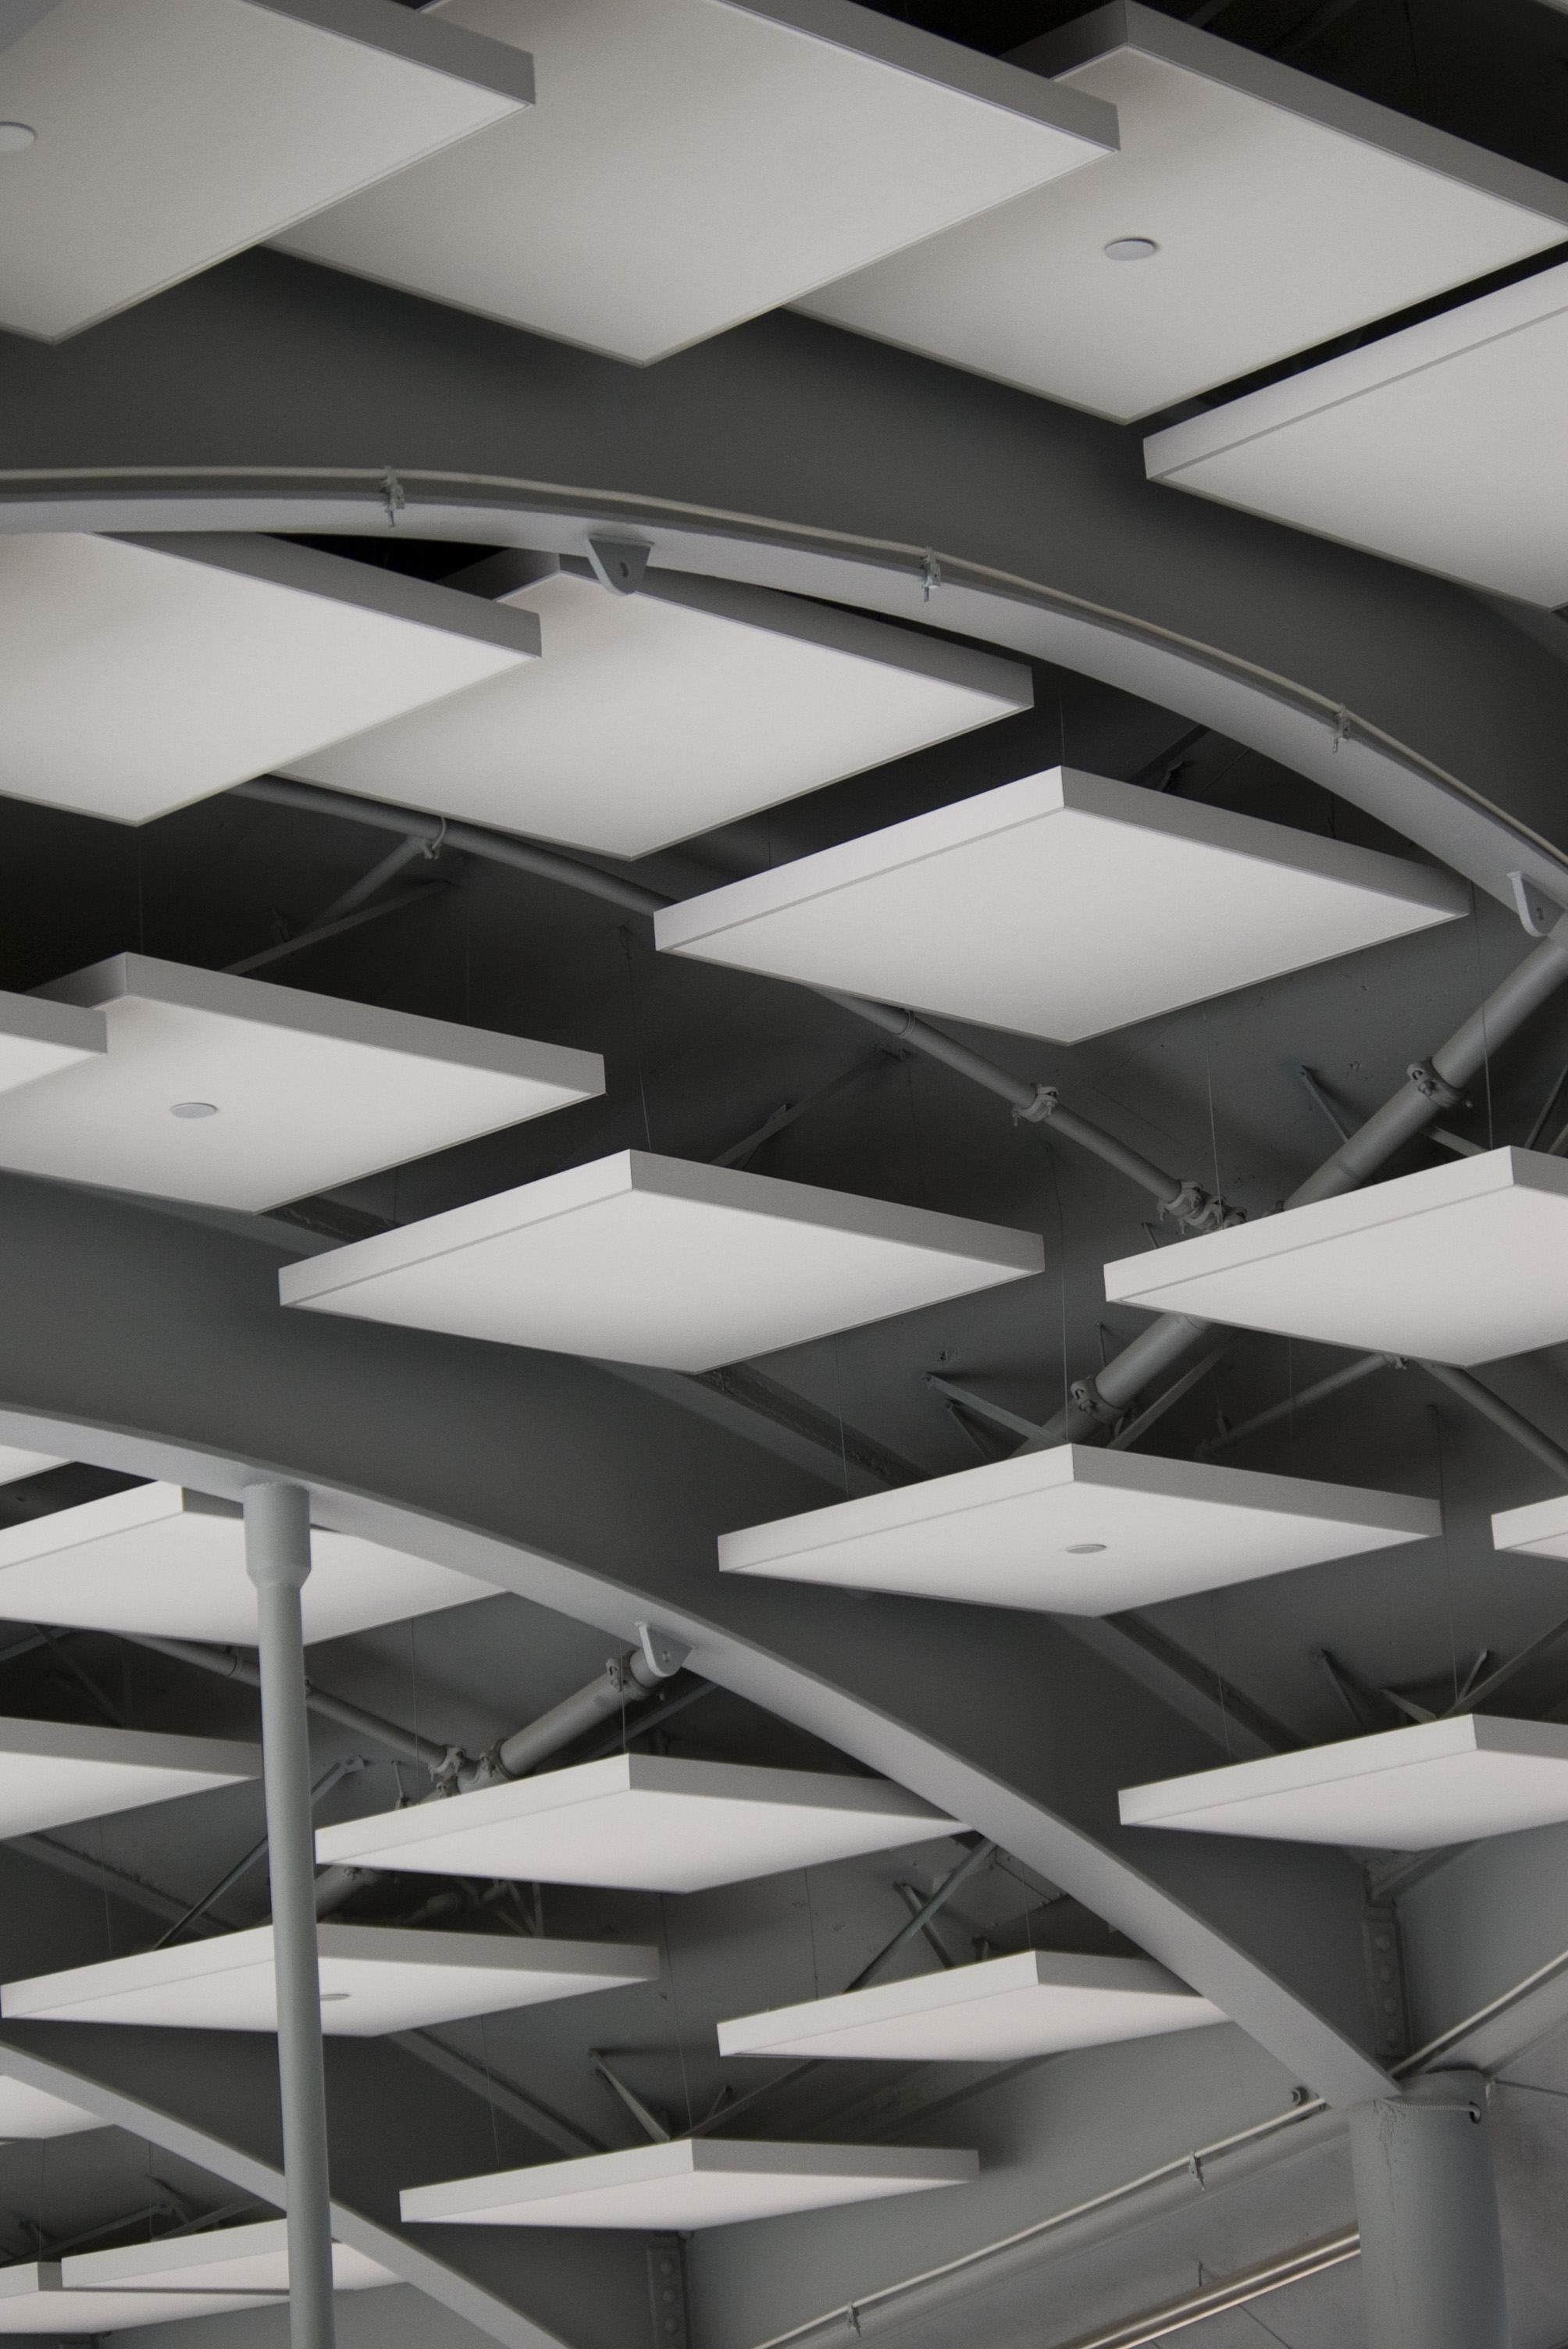 Free Stock Photo Architectural Ceiling Tiles